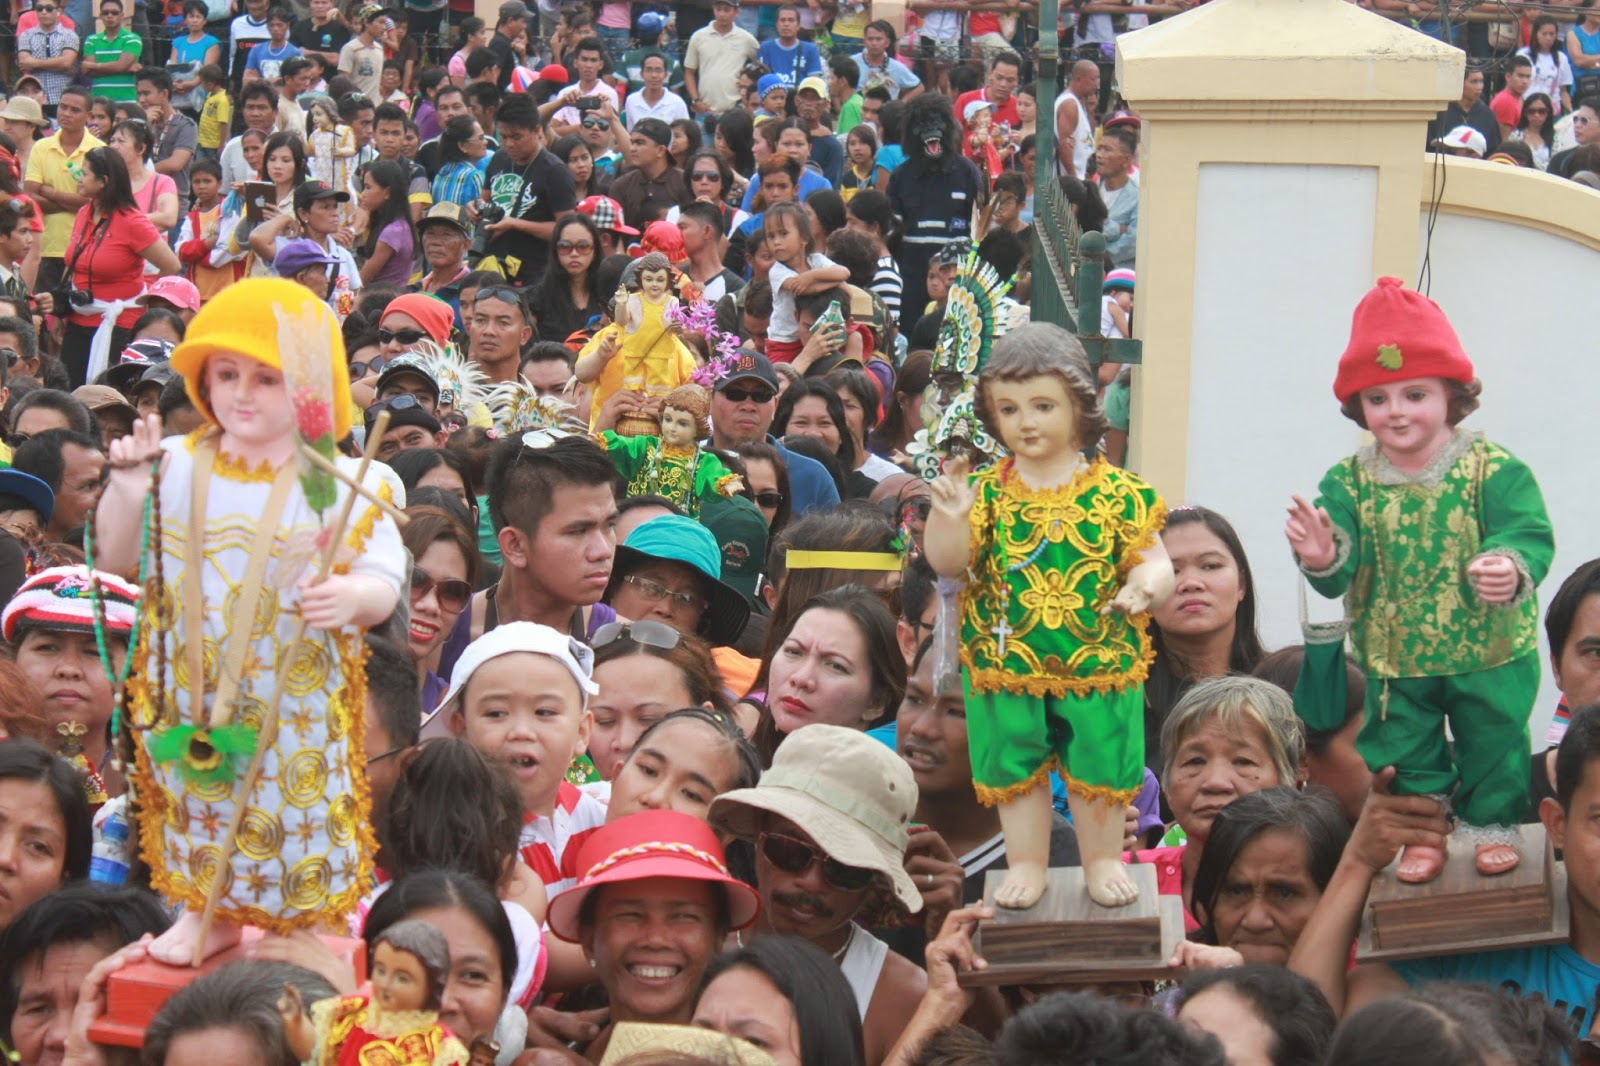 Kalibo Ati-Atihan festival 'generally peaceful'